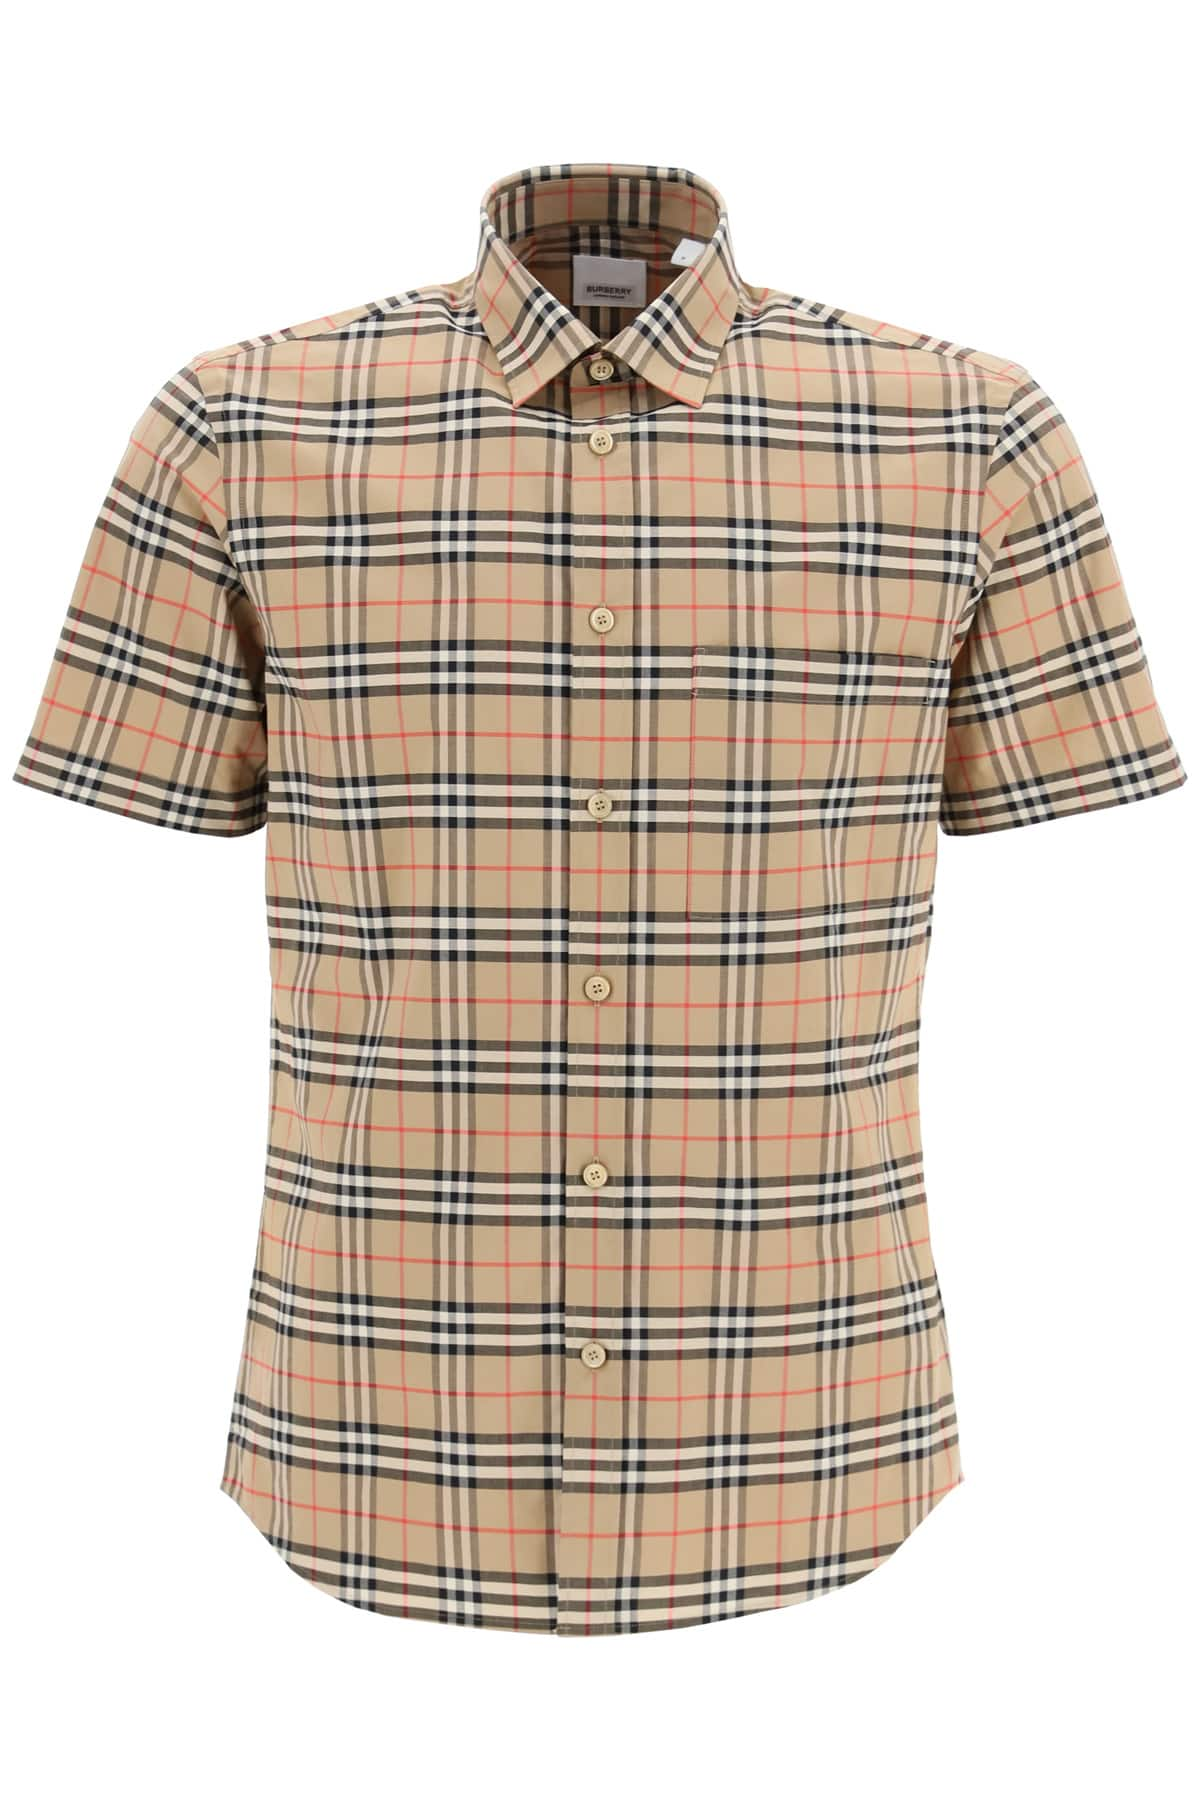 BURBERRY SIMPSON SHIRT WITH TARTAN PATTERN L Brown, Black, Red Cotton